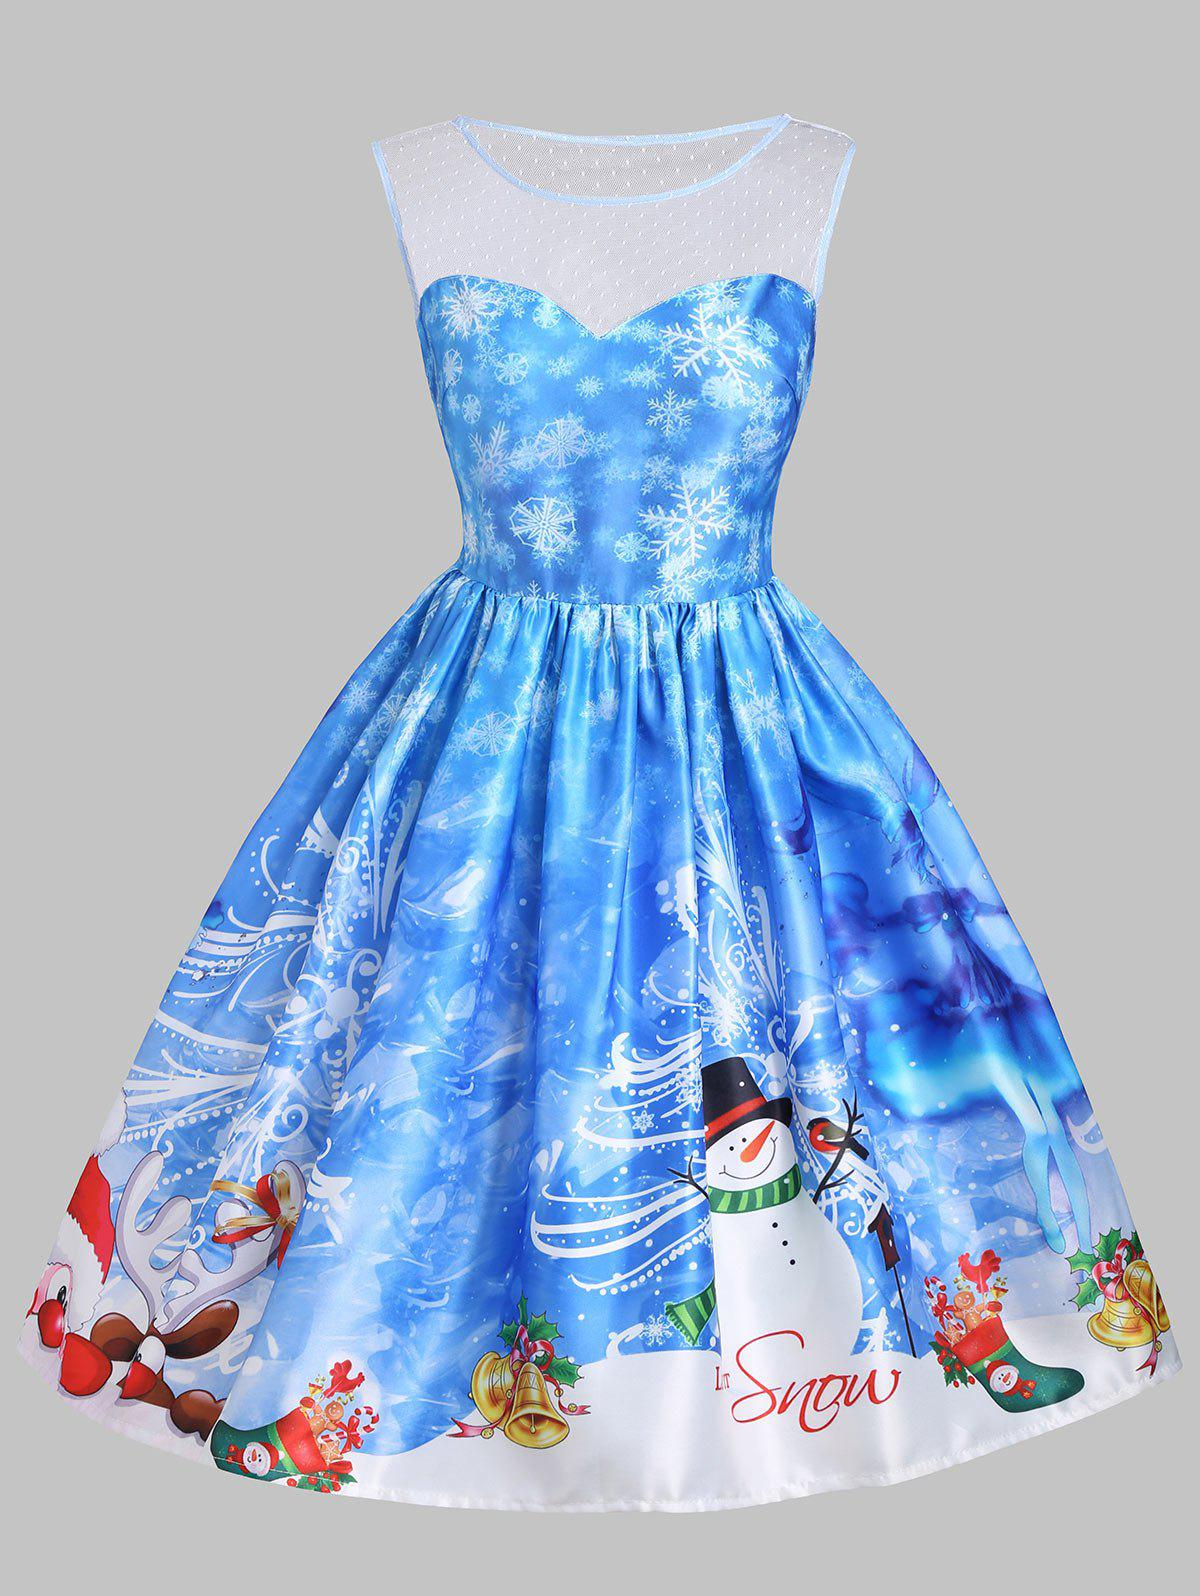 Christmas Snowman Snowflake Mesh Insert DressWOMEN<br><br>Size: S; Color: BLUE; Style: Vintage; Material: Cotton,Polyester; Silhouette: A-Line; Dresses Length: Knee-Length; Neckline: Round Collar; Sleeve Length: Sleeveless; Embellishment: Mesh; Pattern Type: Letter,Print; With Belt: No; Season: Fall,Spring,Summer; Weight: 0.3500kg; Package Contents: 1 x Dress;